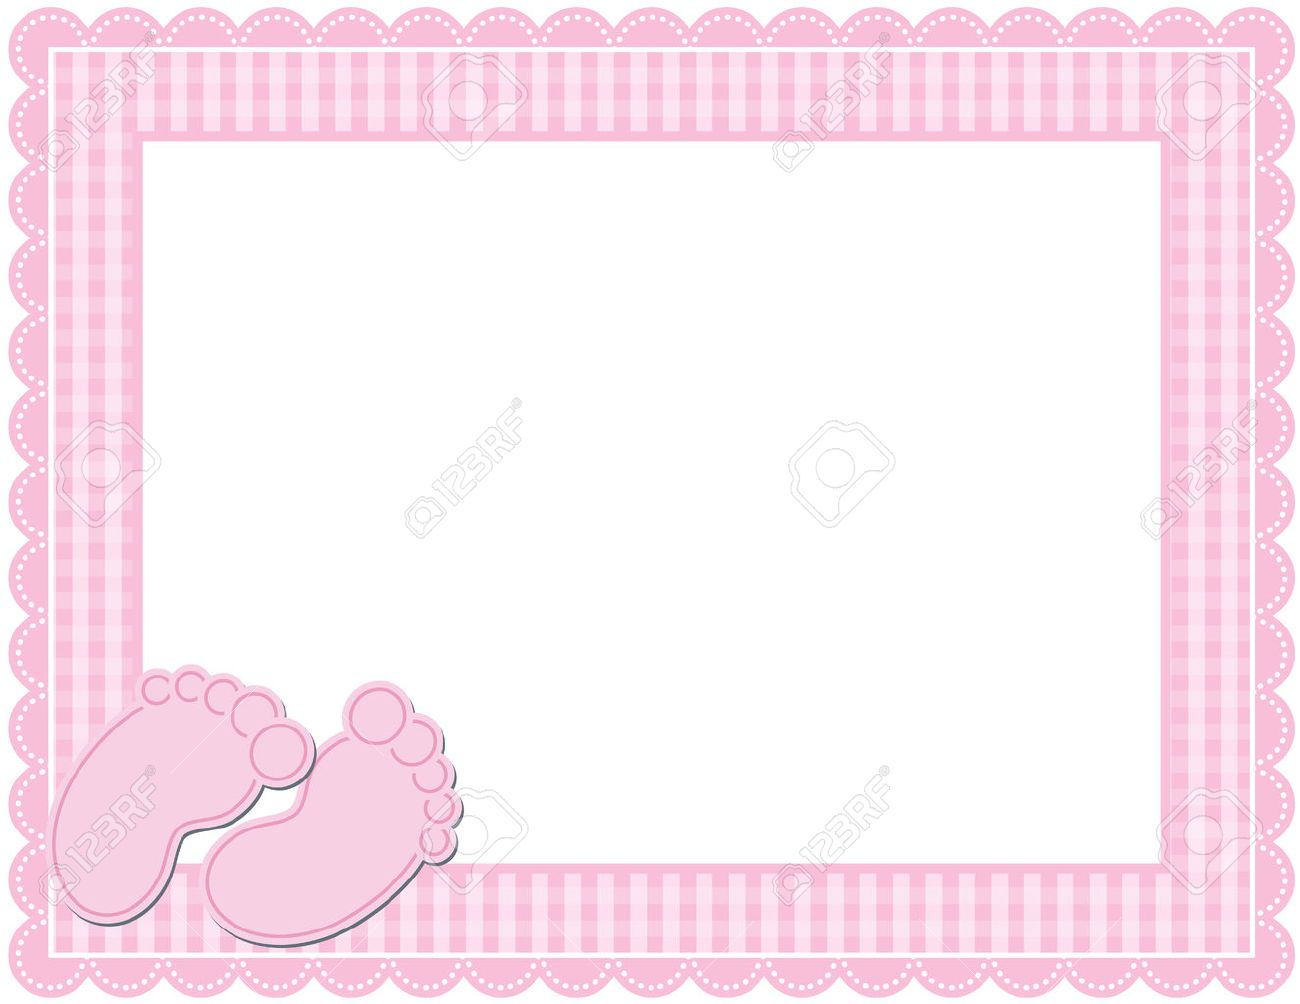 Baby Girl Gingham Frame Royalty Free Cliparts, Vectors, And Stock ...